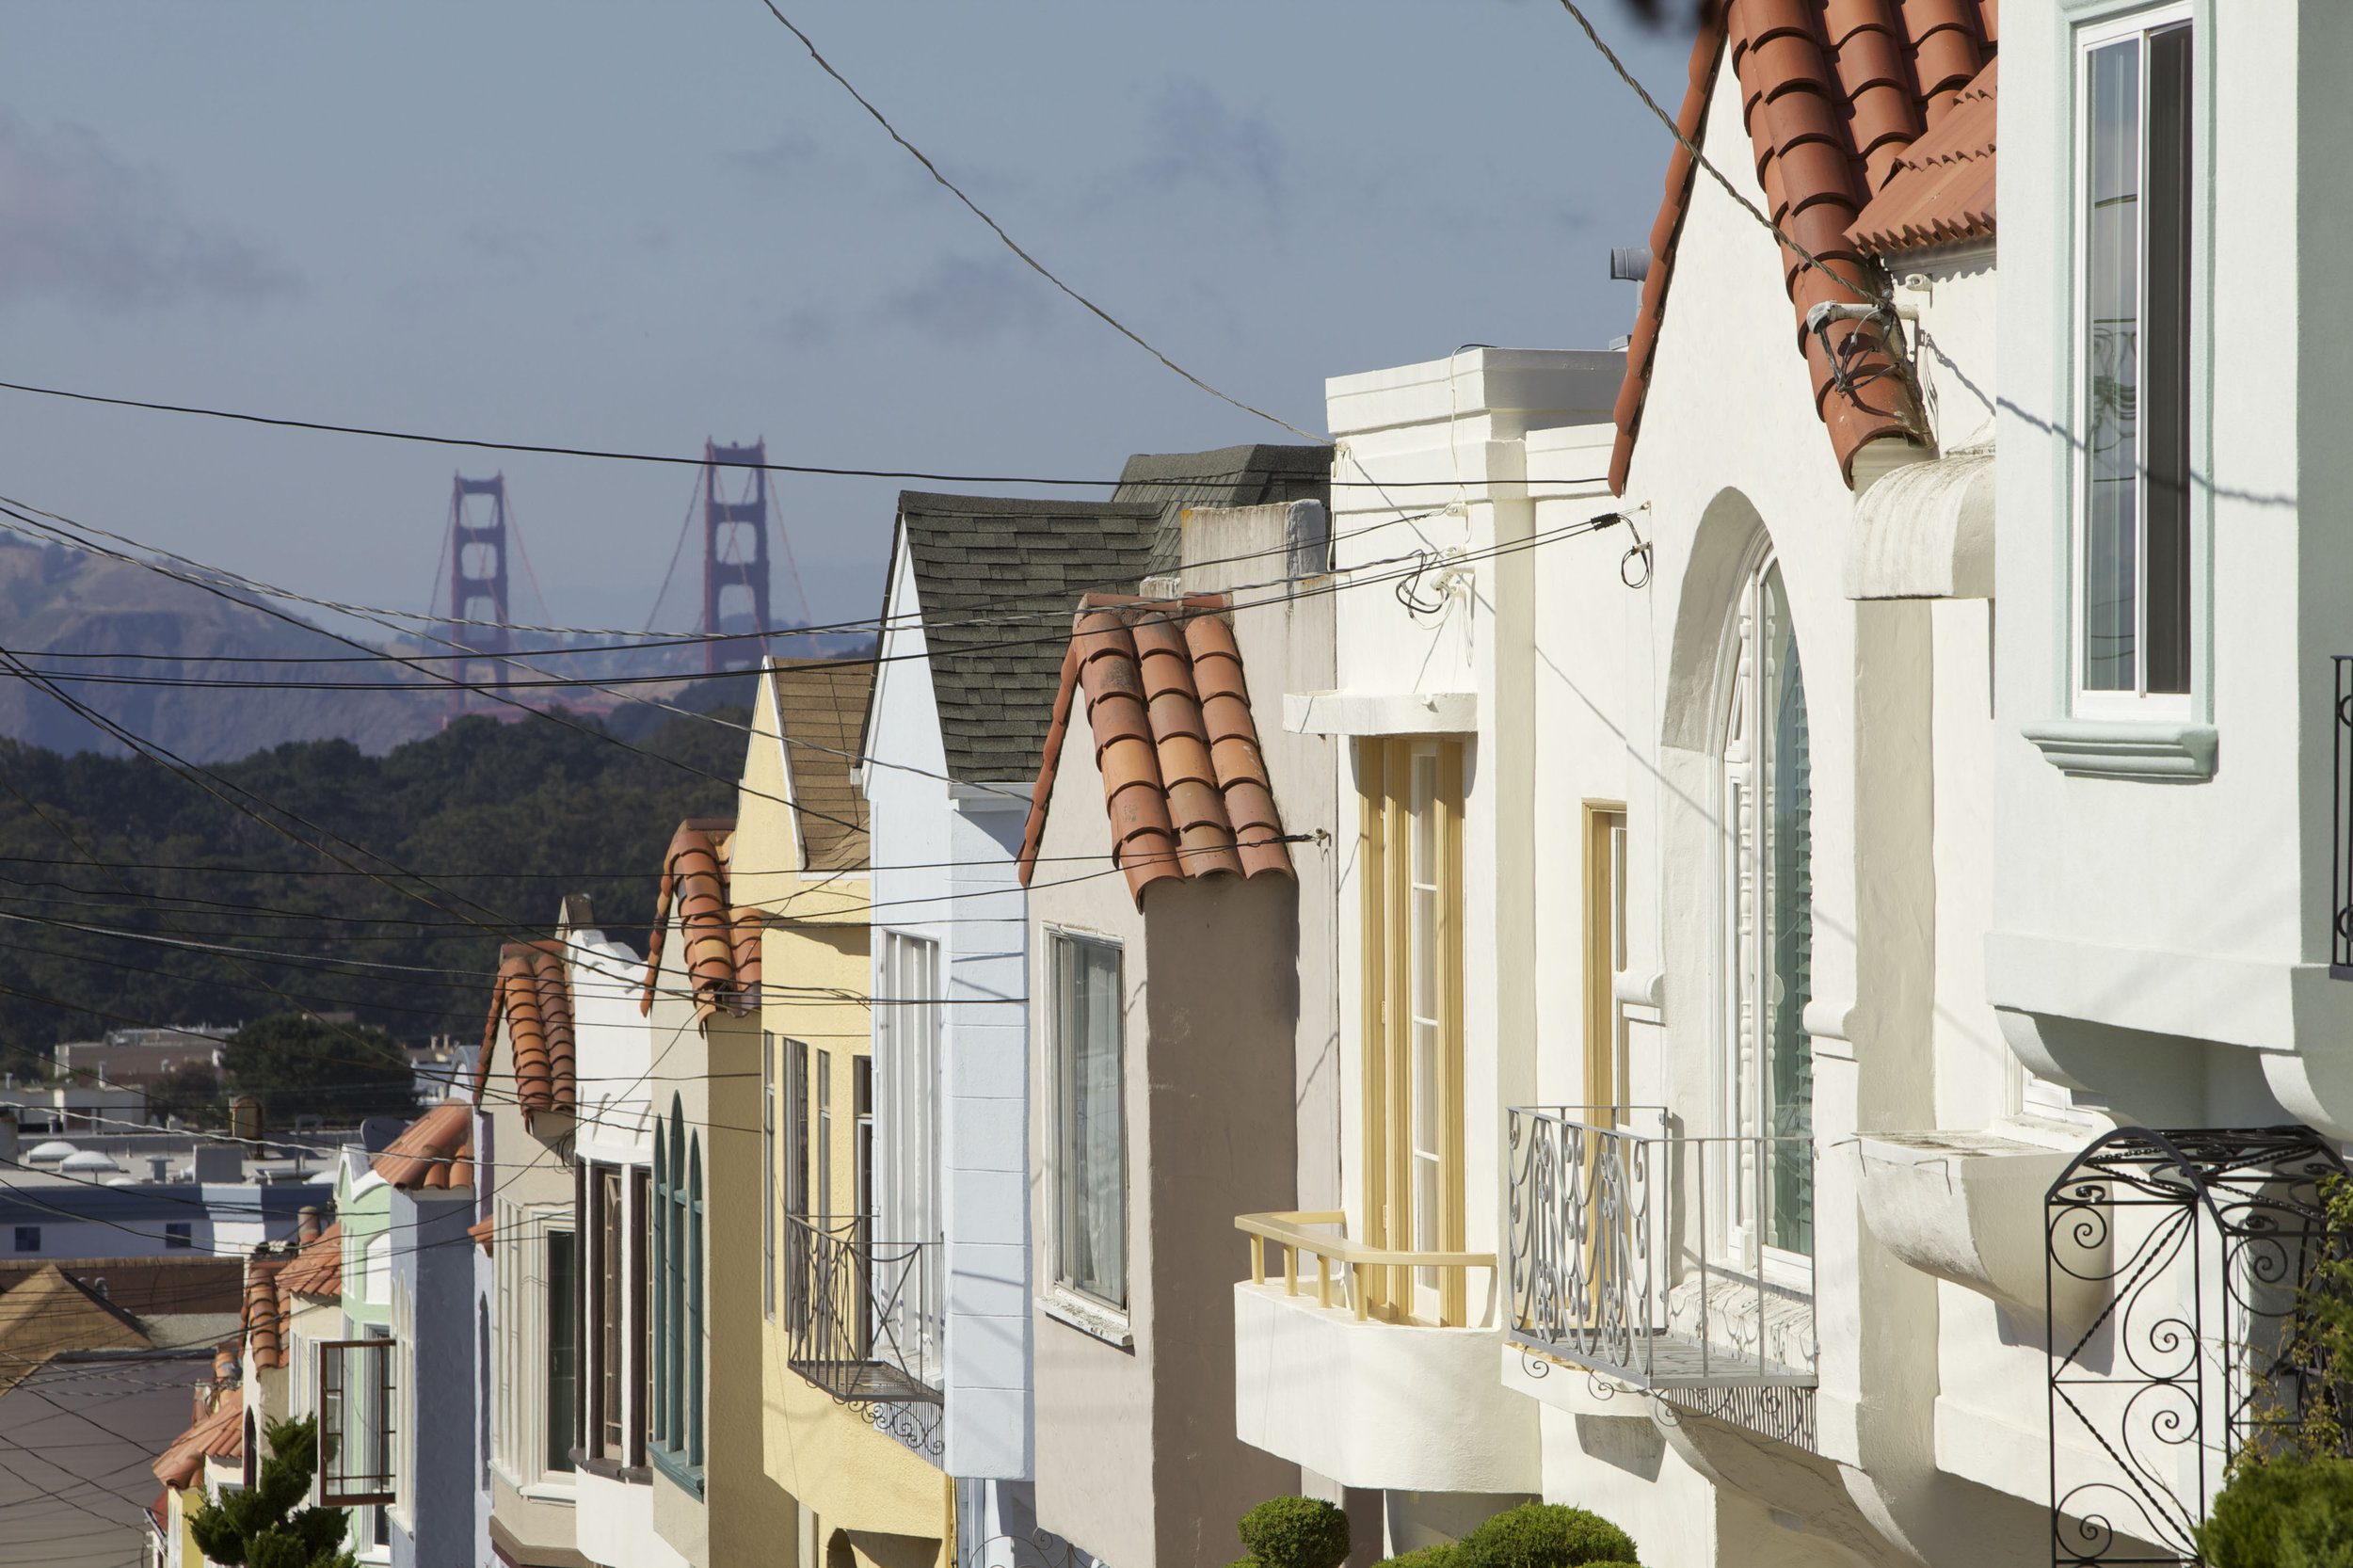 San Francisco neighbourhoods (image care of San Francisco Travel).